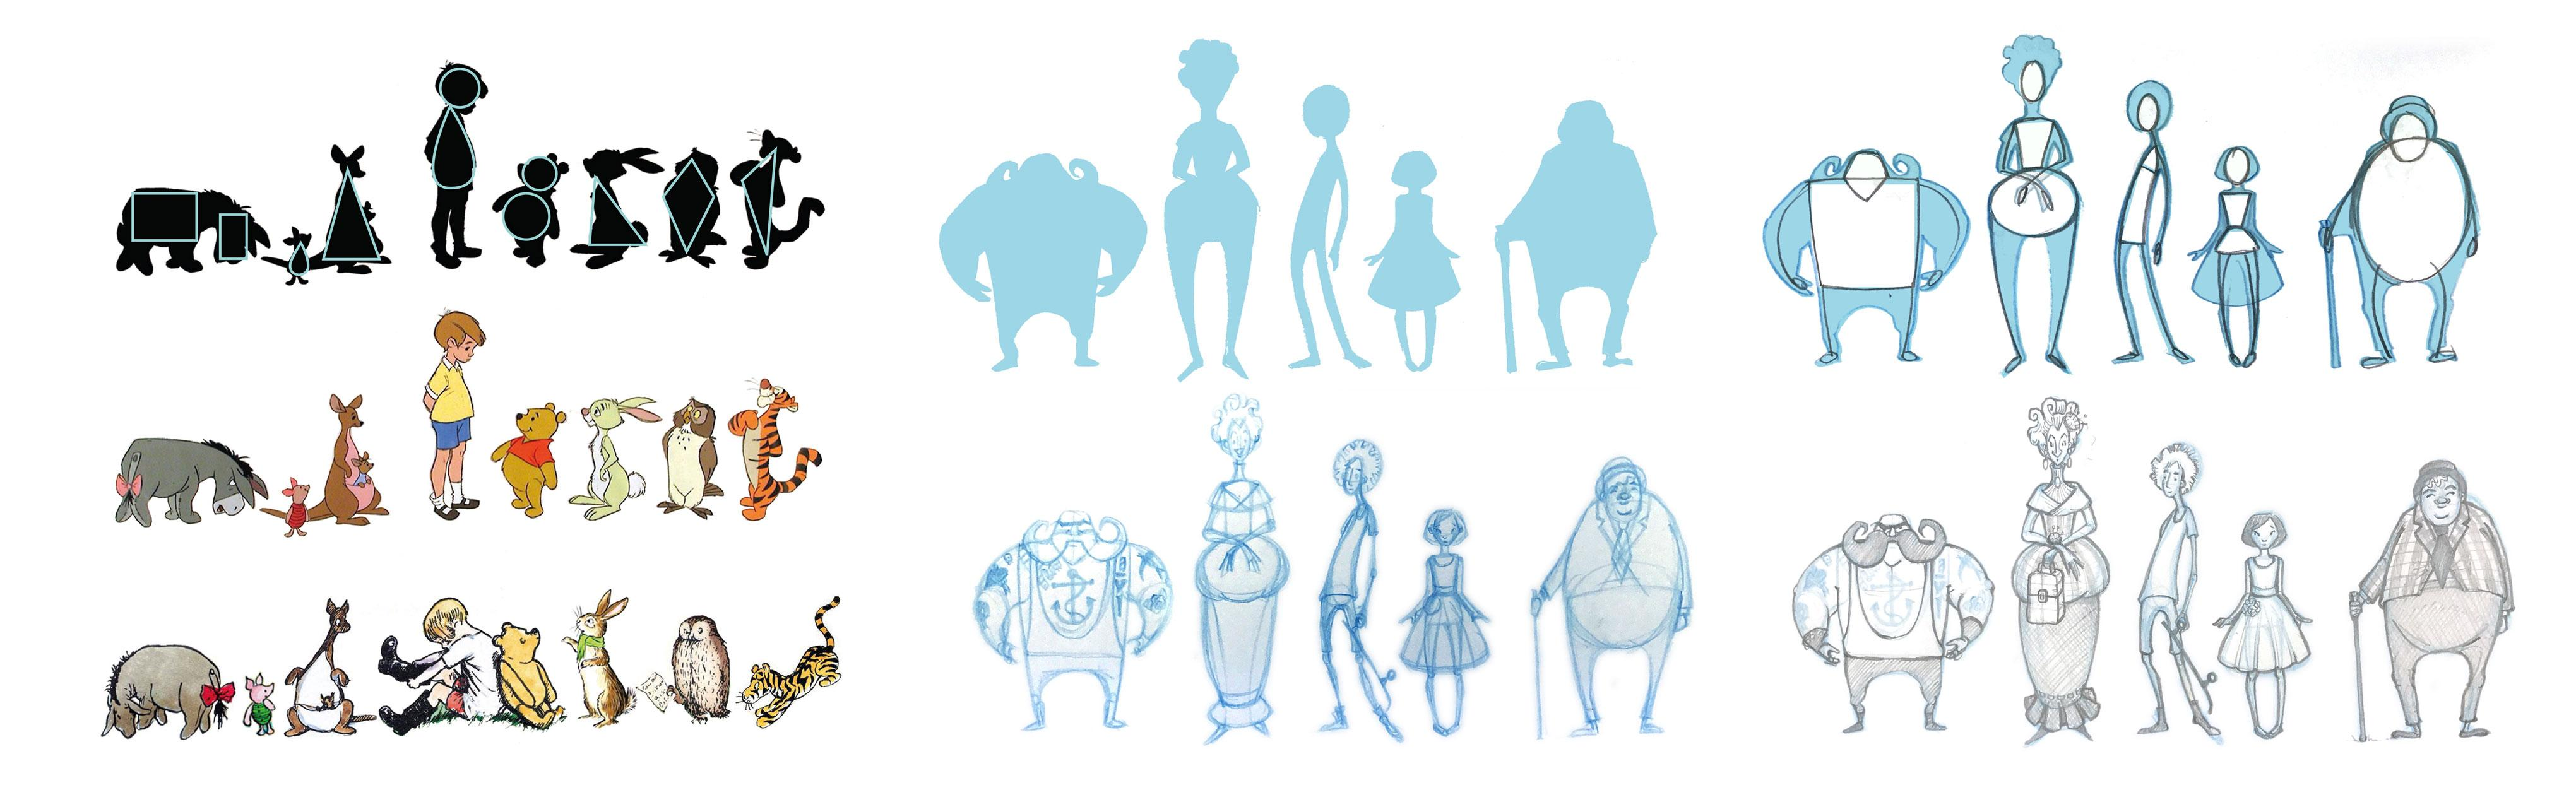 Character Design Body Shapes : Draw a circus of characters exploring body shape and